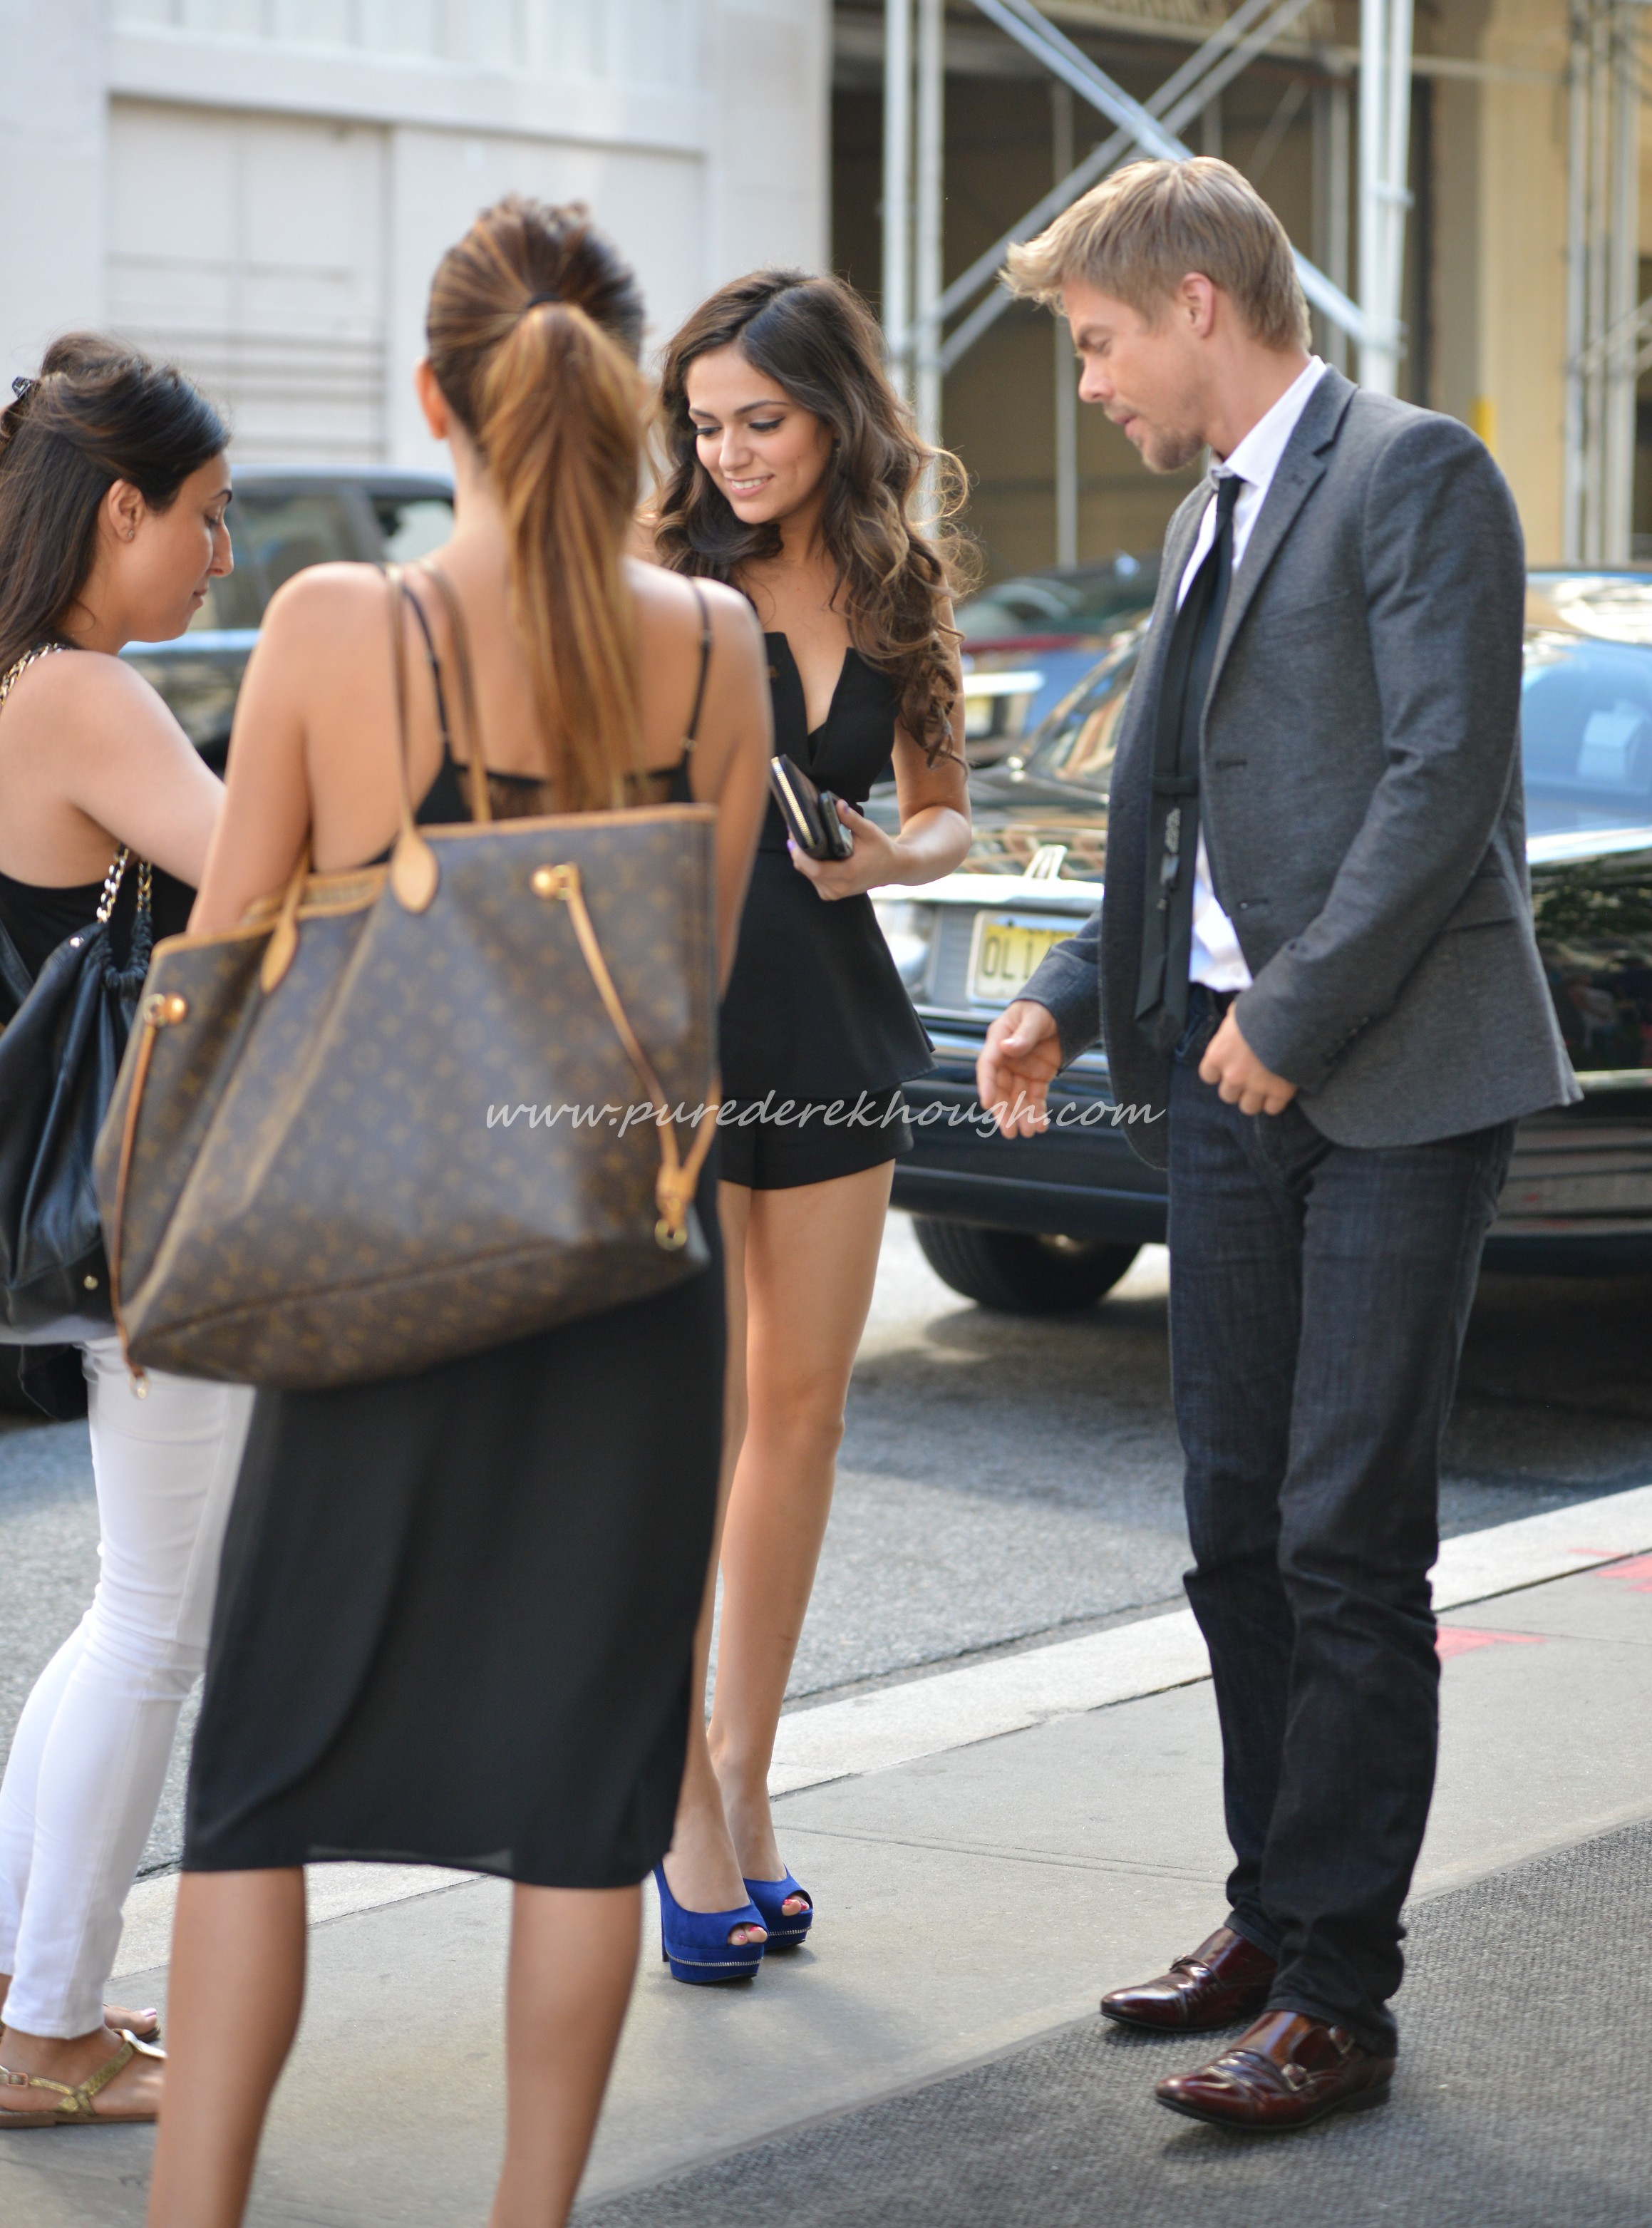 Who is Derek Hough dating?